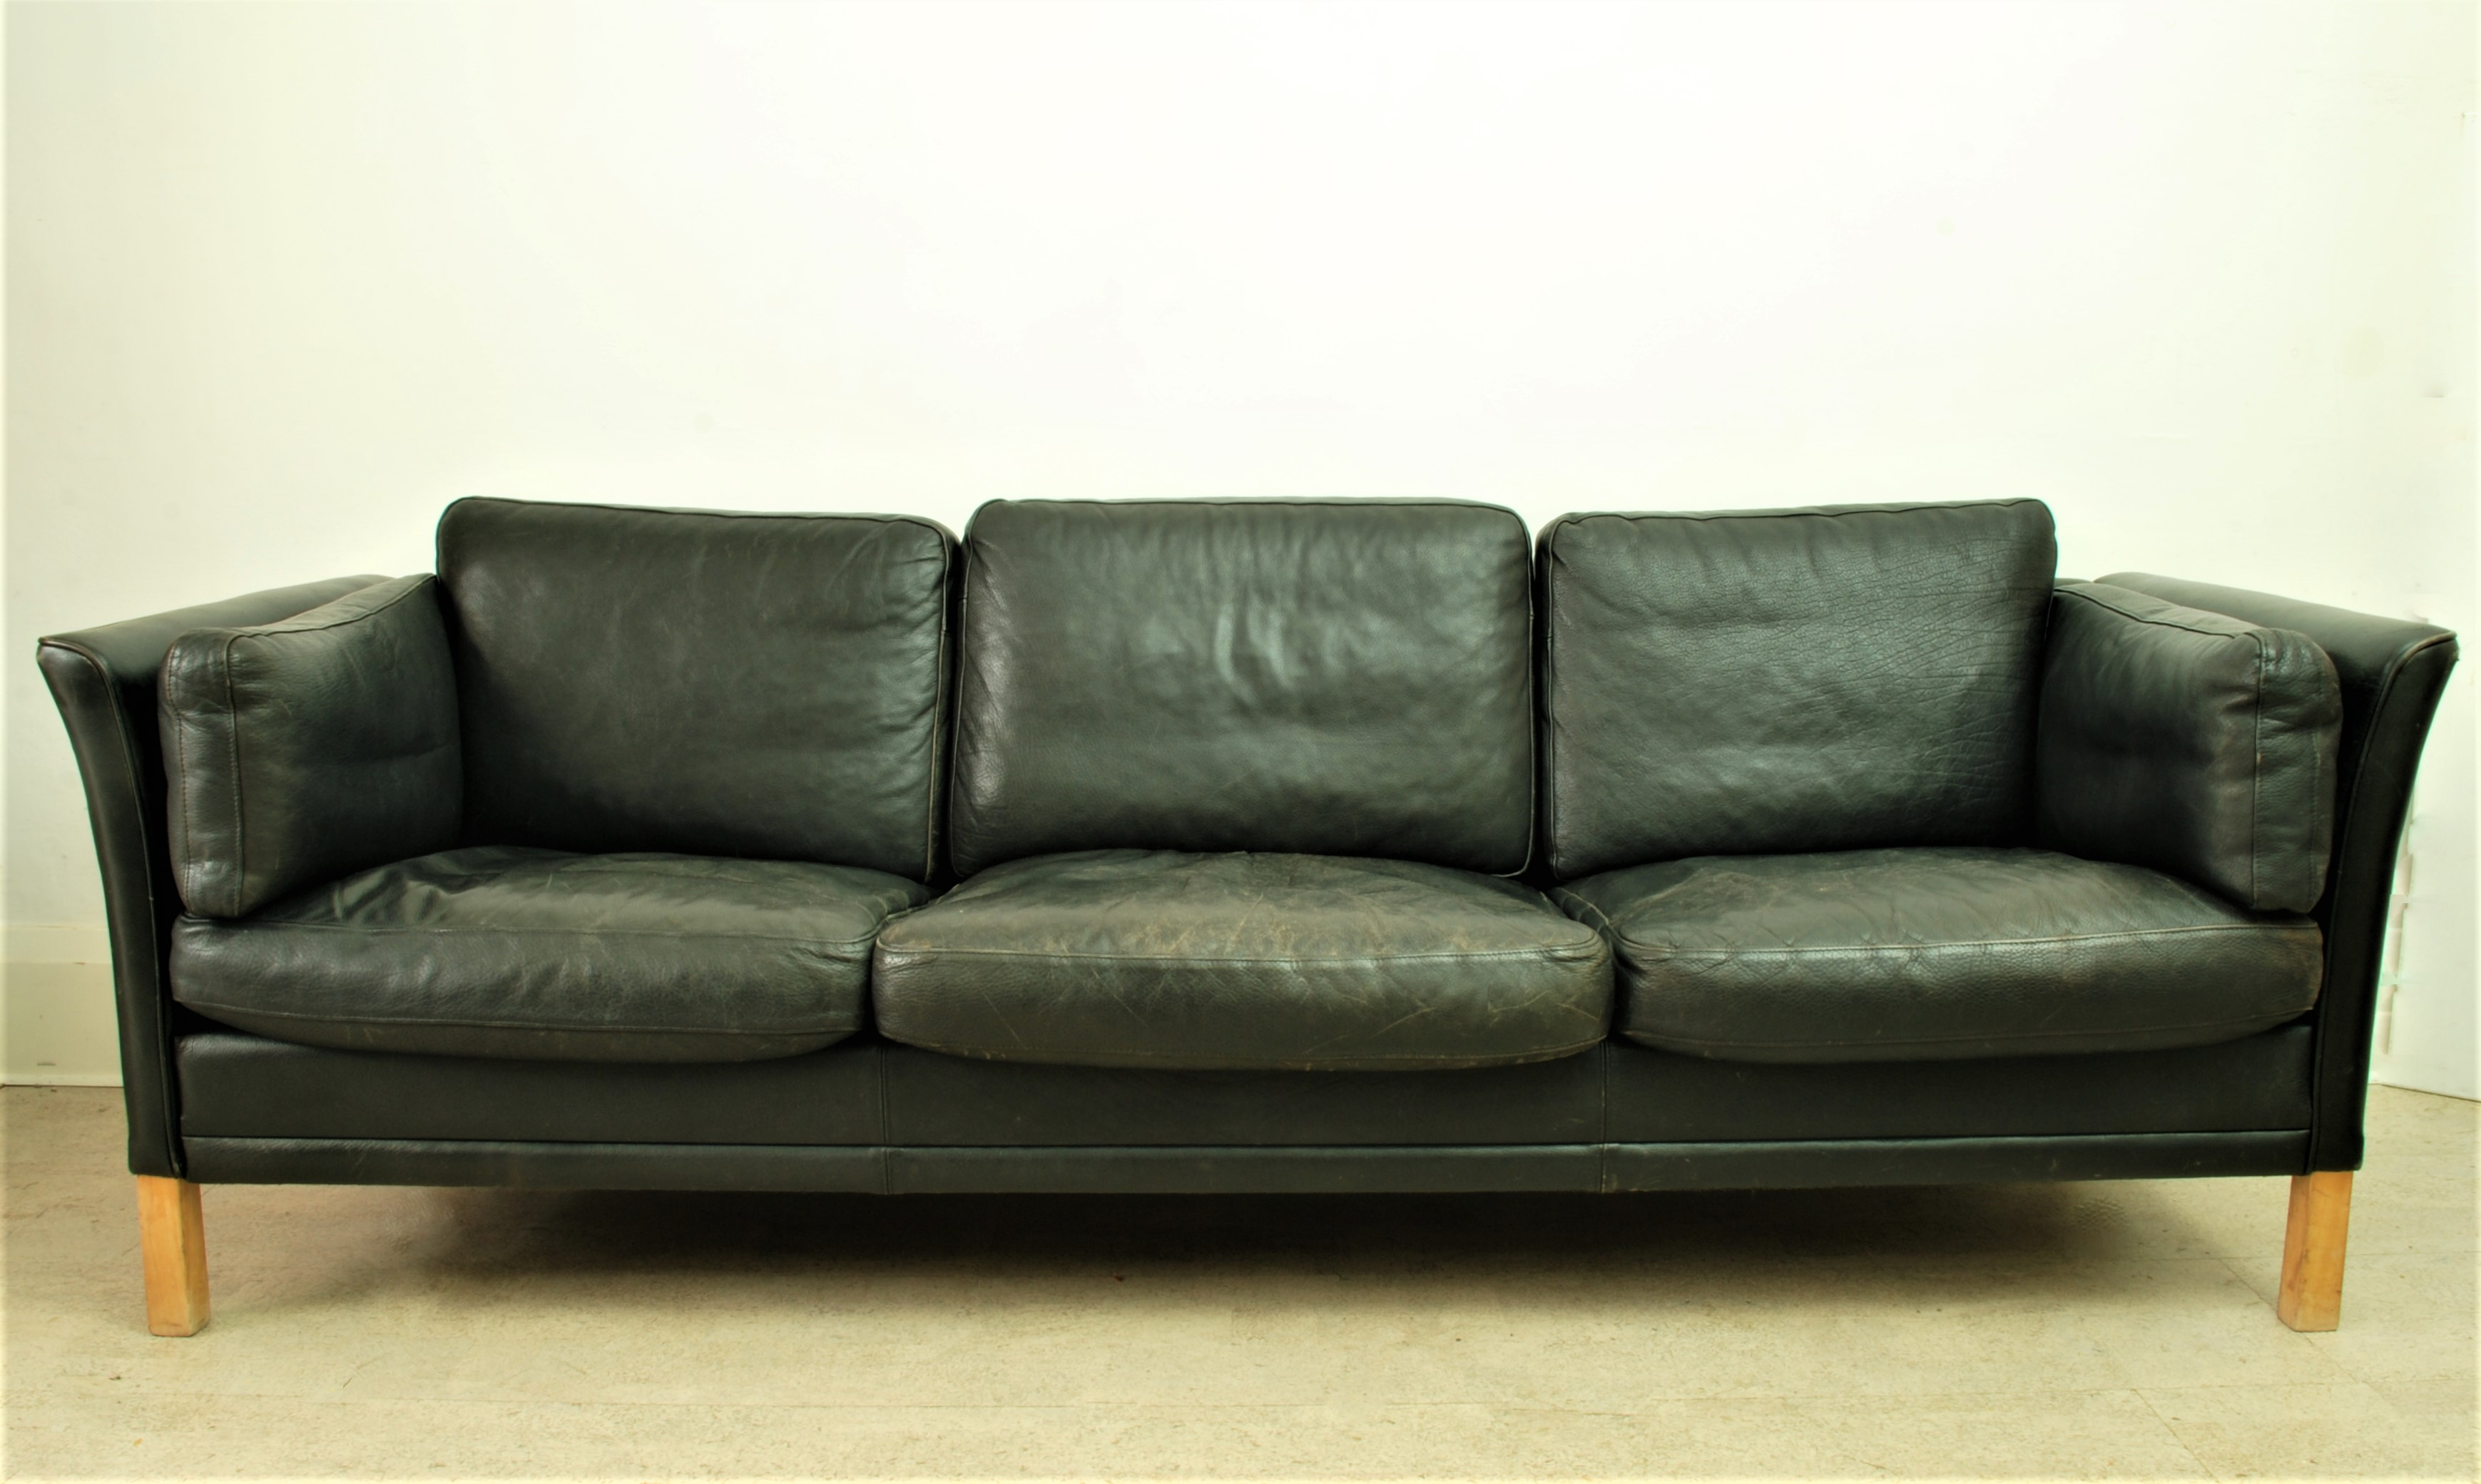 Danish Black Leather Sofa (2)